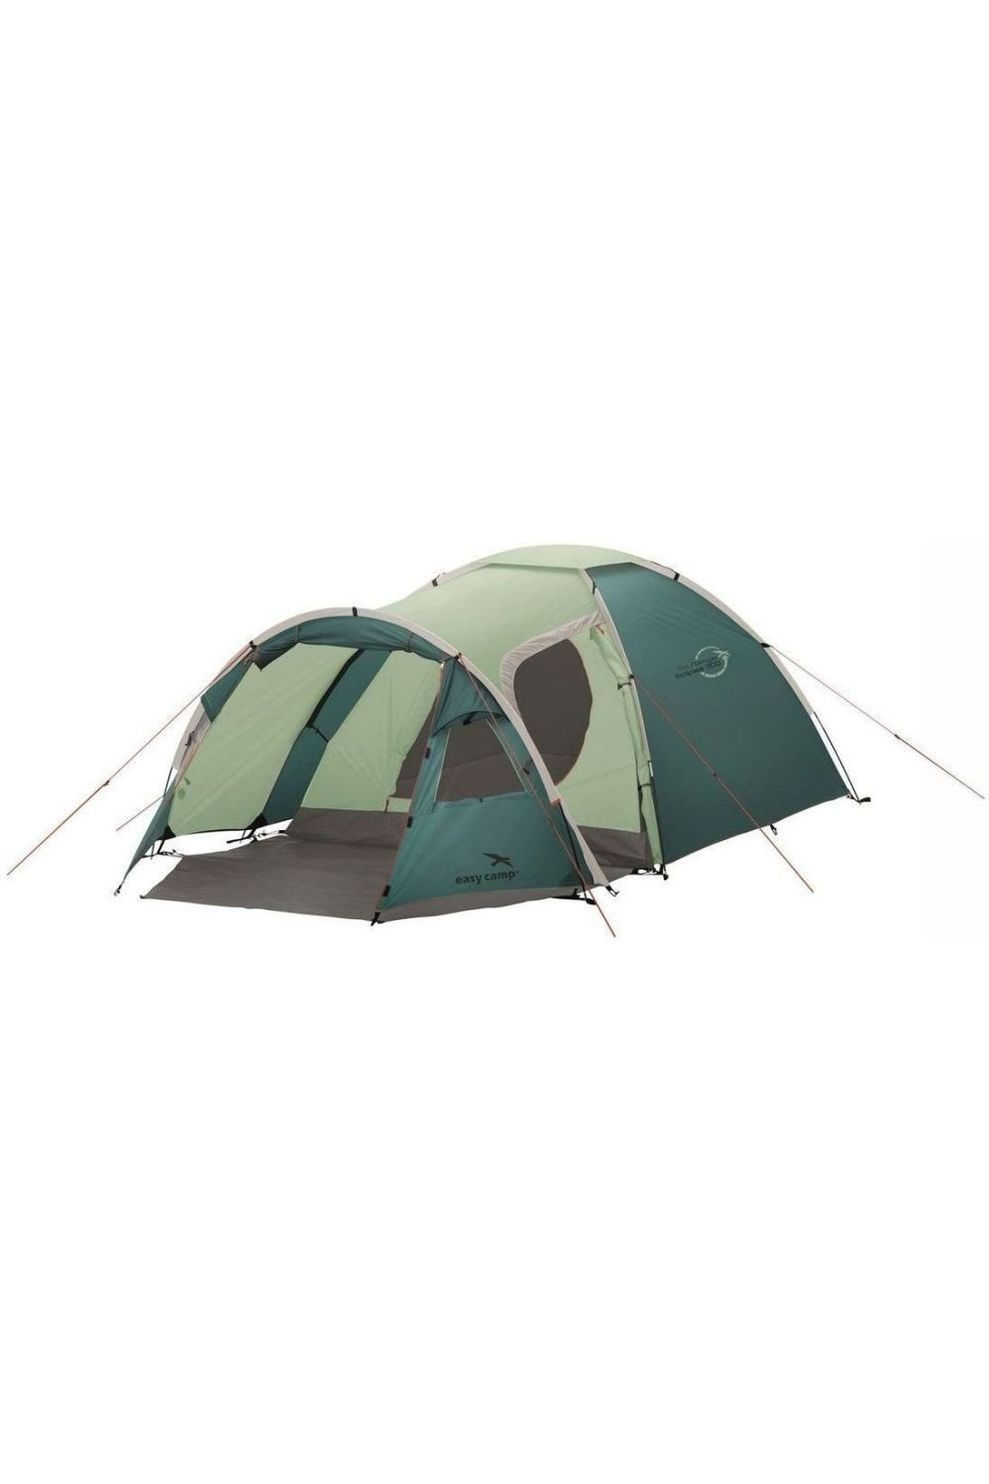 Easy Camp Tent Eclipse 300 - Groen